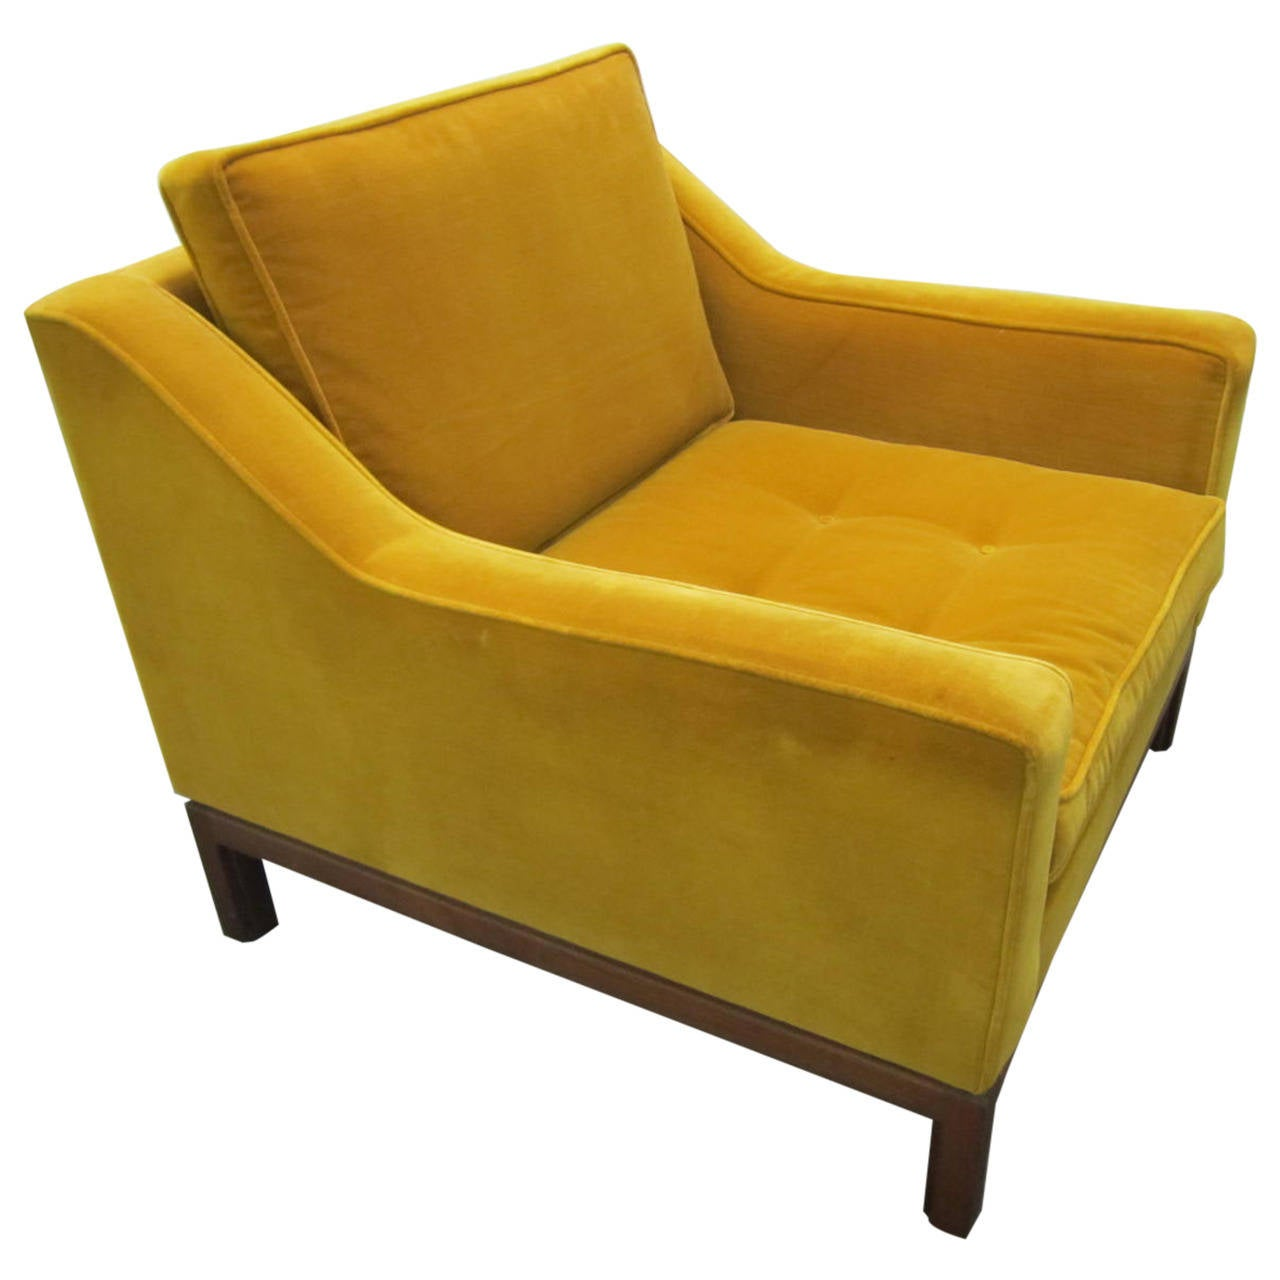 Striking jens risom tufted slope armchair mid century for Mid century modern armchairs